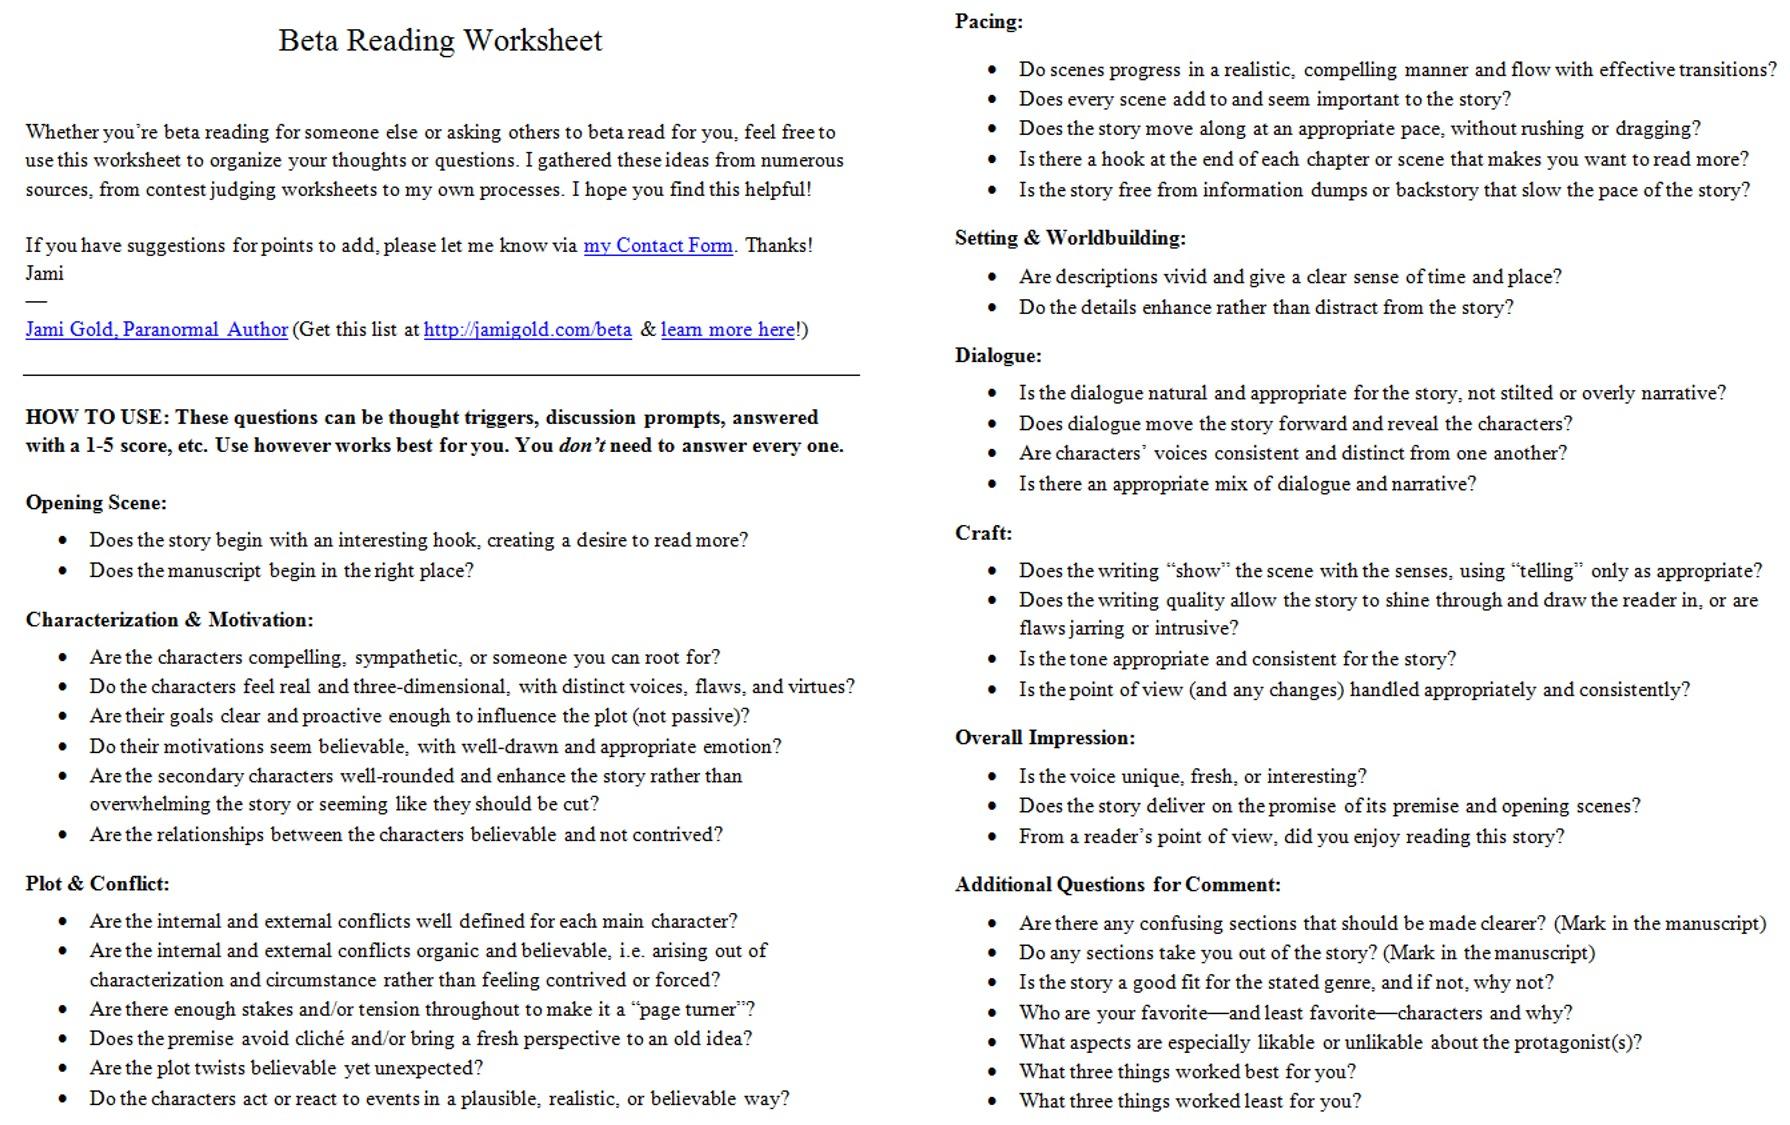 Aldiablosus  Gorgeous Worksheets For Writers  Jami Gold Paranormal Author With Fetching Screen Shot Of The Twopage Beta Reading Worksheet With Beauteous St Grade Capitalization Worksheets Also Metaphor Worksheets For Rd Grade In Addition Free Printable Math Worksheets For Preschoolers And Th Grade Money Worksheets As Well As Chemical Reactions Balancing Equations Worksheet Answers Additionally Creating Scatter Plots Worksheet From Jamigoldcom With Aldiablosus  Fetching Worksheets For Writers  Jami Gold Paranormal Author With Beauteous Screen Shot Of The Twopage Beta Reading Worksheet And Gorgeous St Grade Capitalization Worksheets Also Metaphor Worksheets For Rd Grade In Addition Free Printable Math Worksheets For Preschoolers From Jamigoldcom